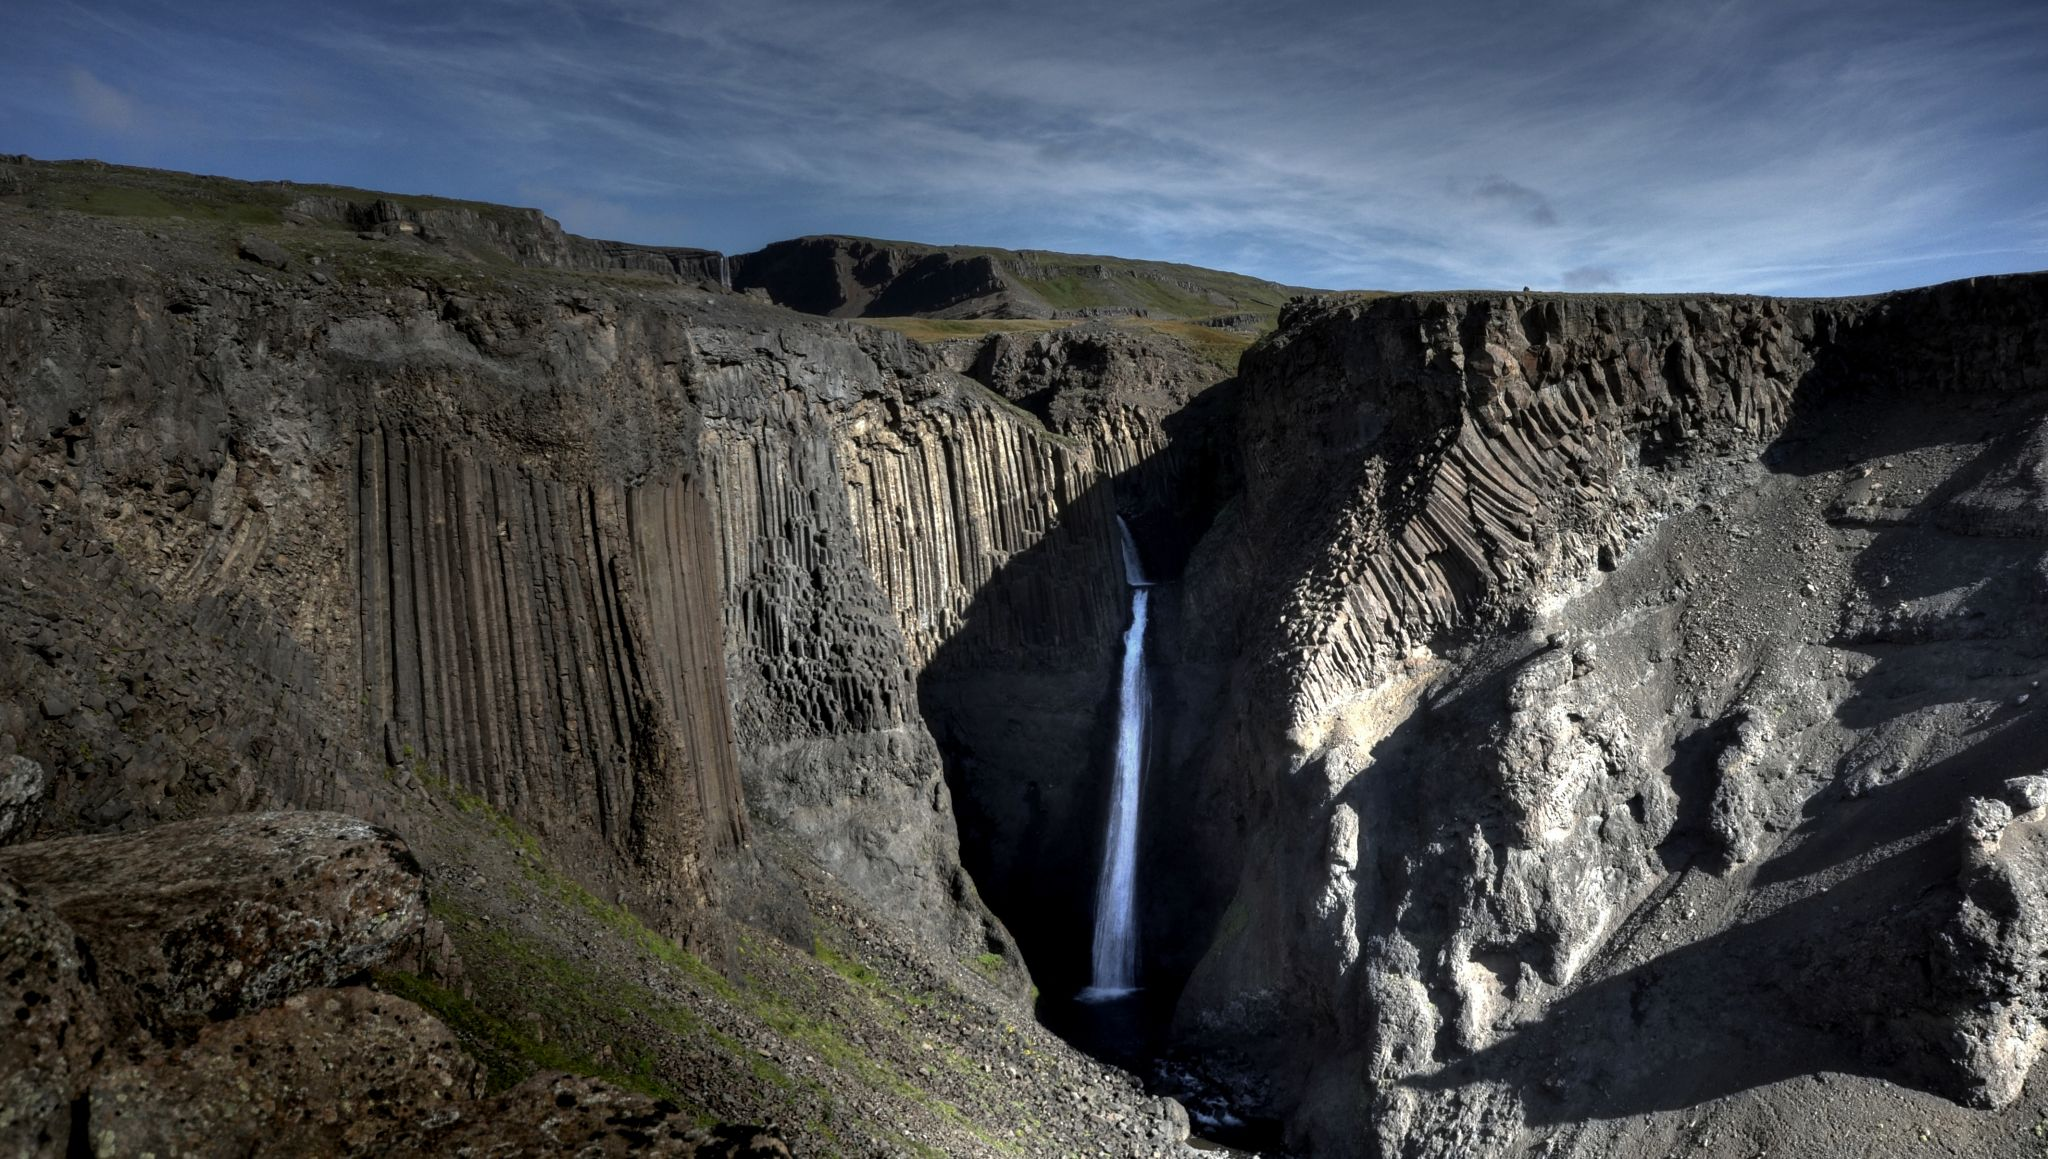 Litlanesfoss in Iceland, Iceland